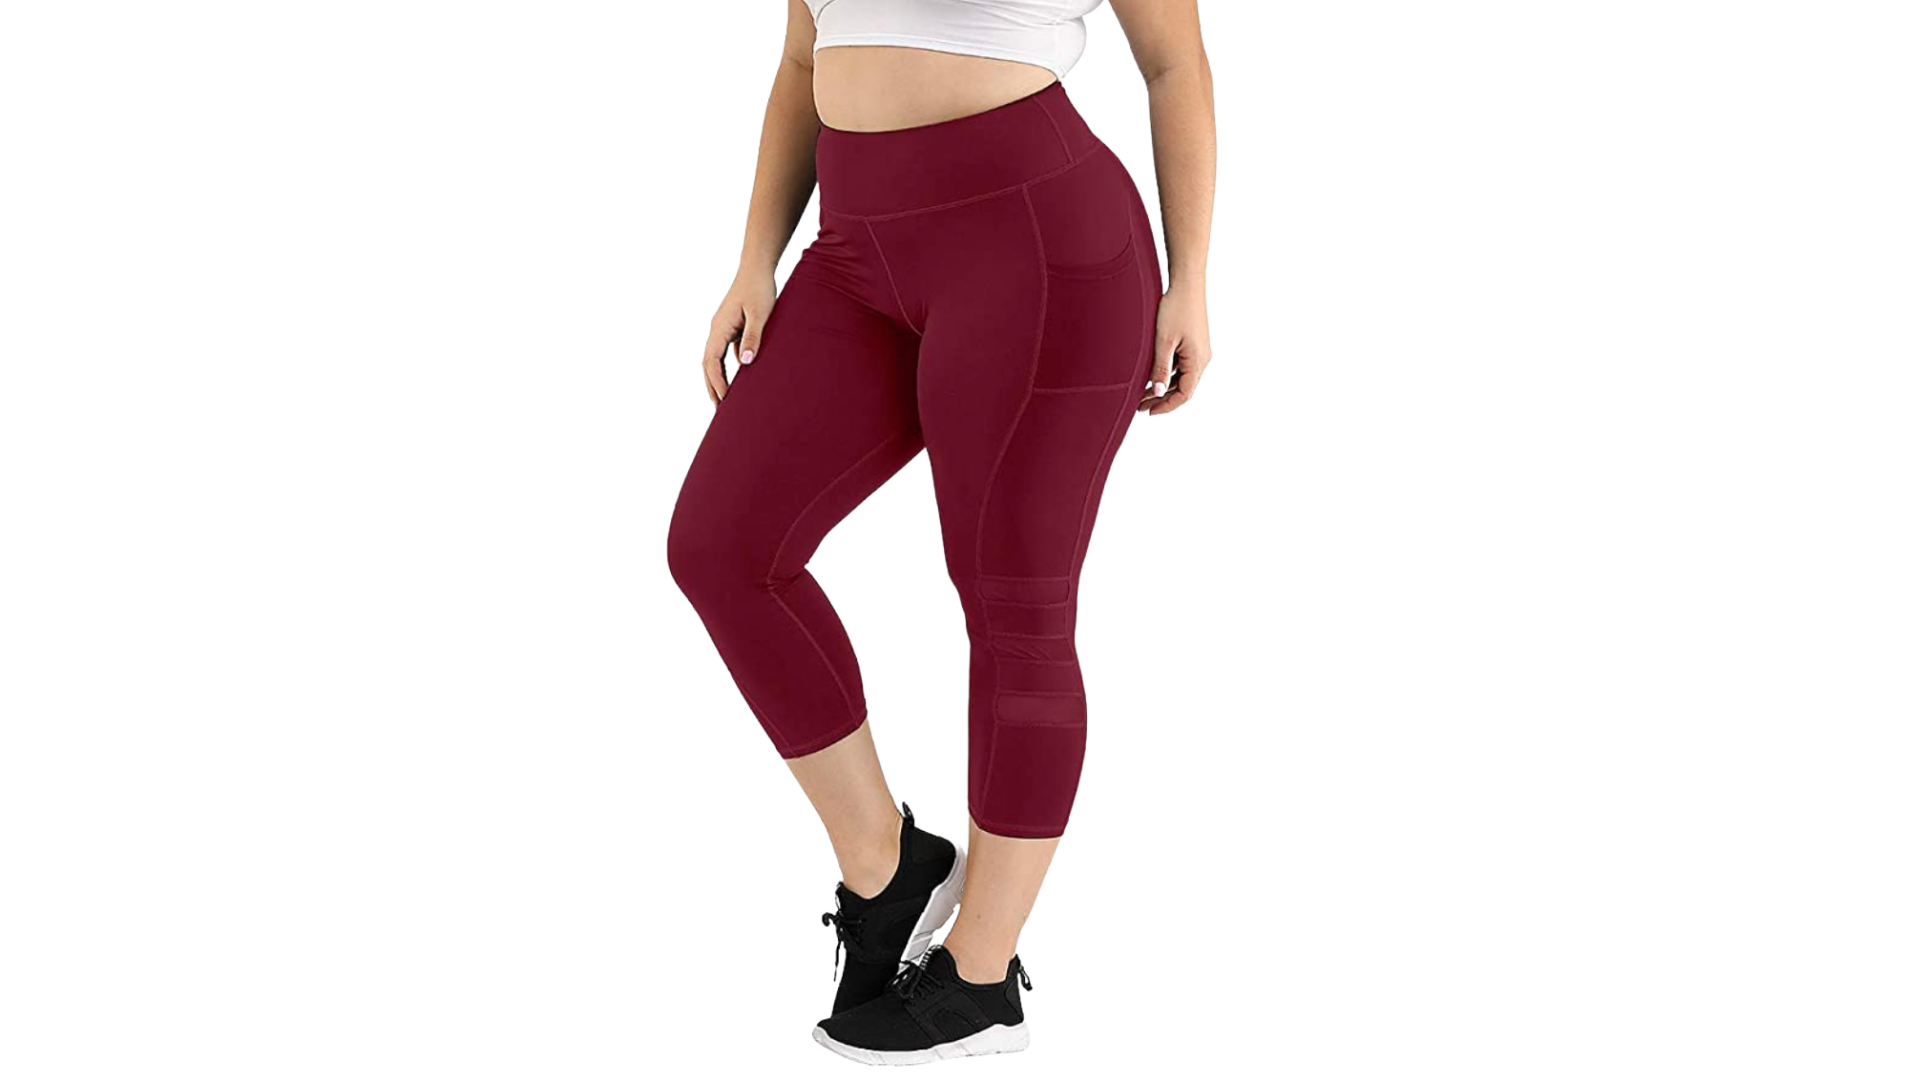 Uoohal best plus size leggings with pockets